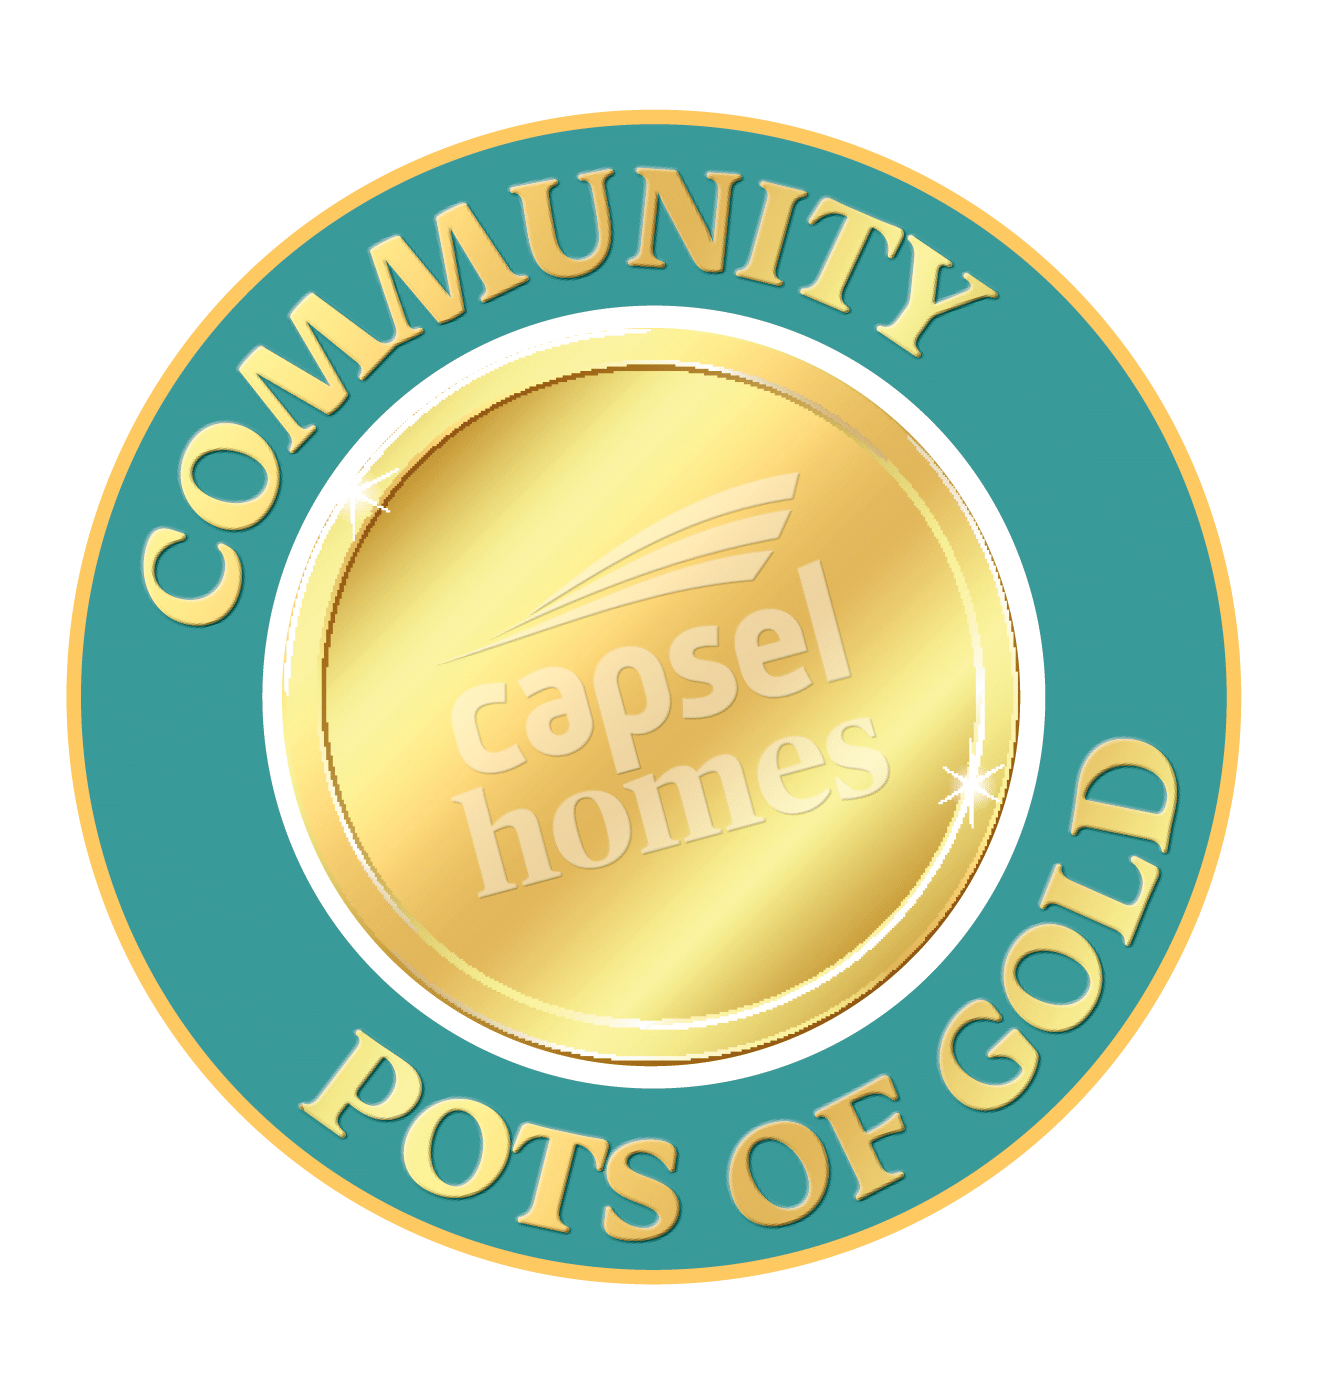 View Capsel Community Pots of Gold – Cyfannol Women's Aid article